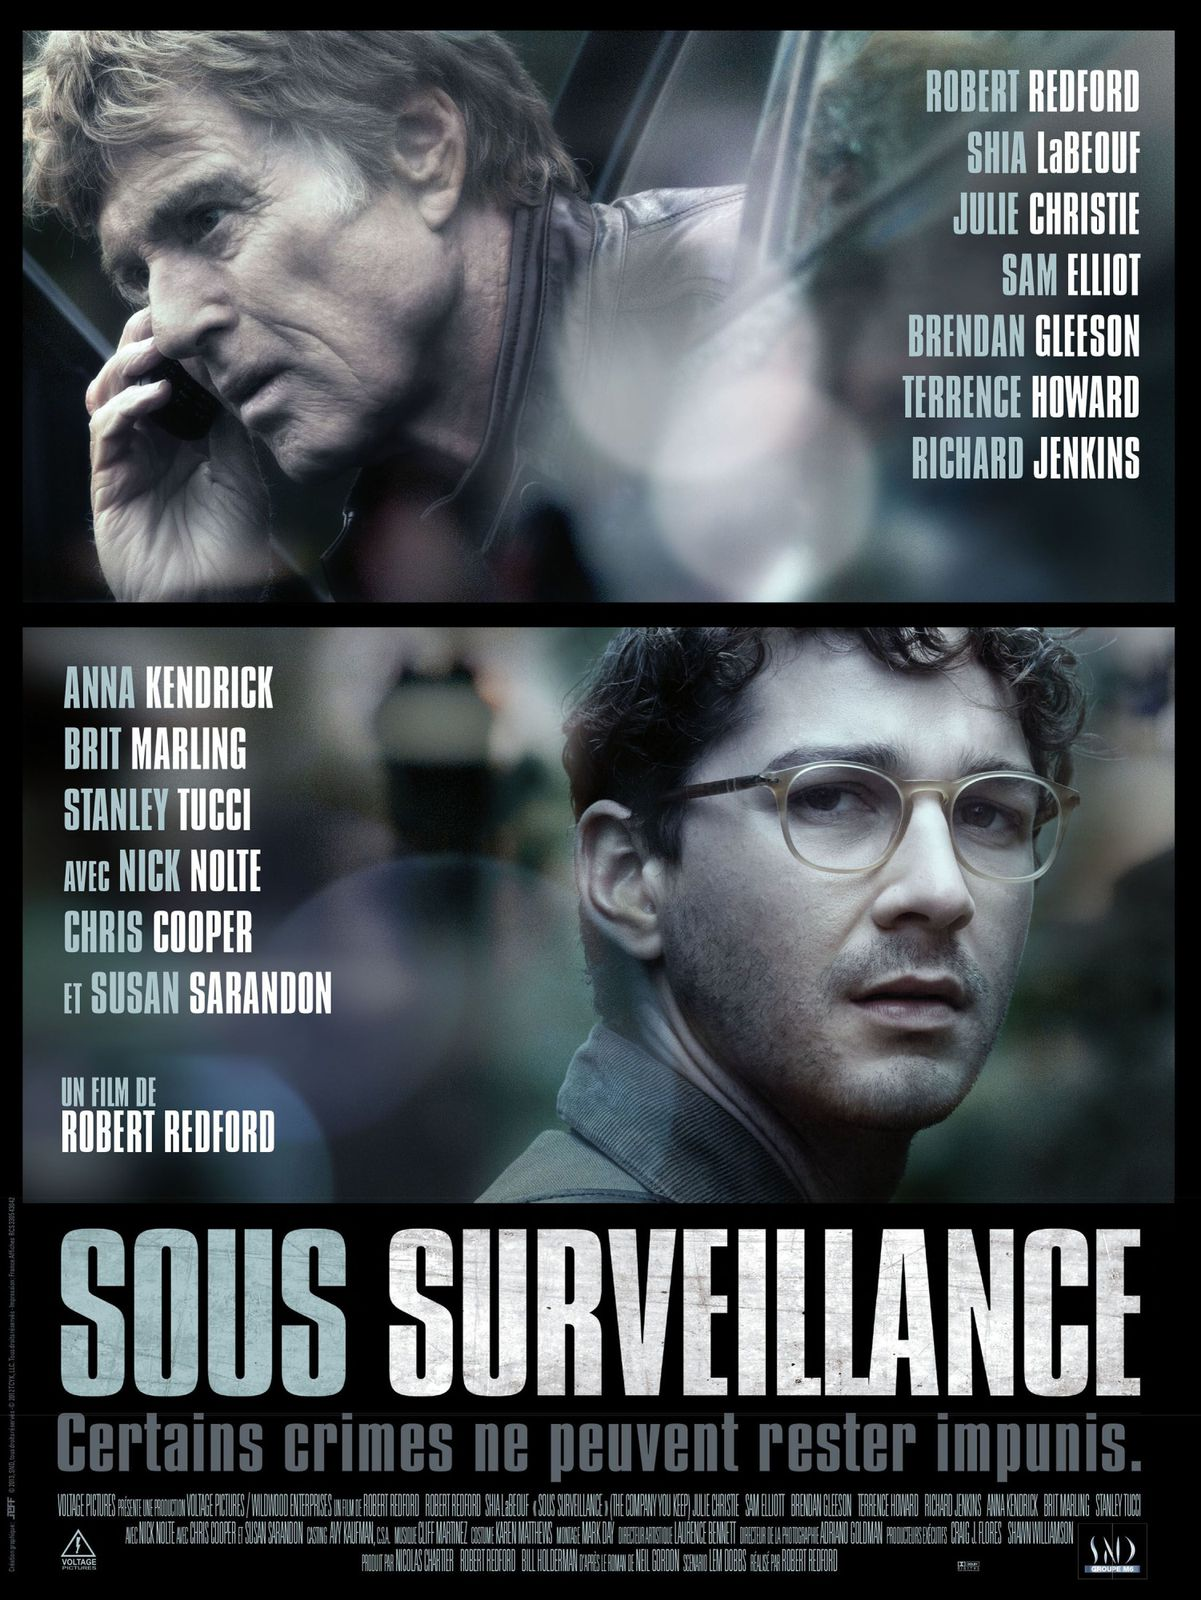 Sous Surveillance (Making-of VOST) de Robert Redford - 08 05 2013 (The Company You Keep)